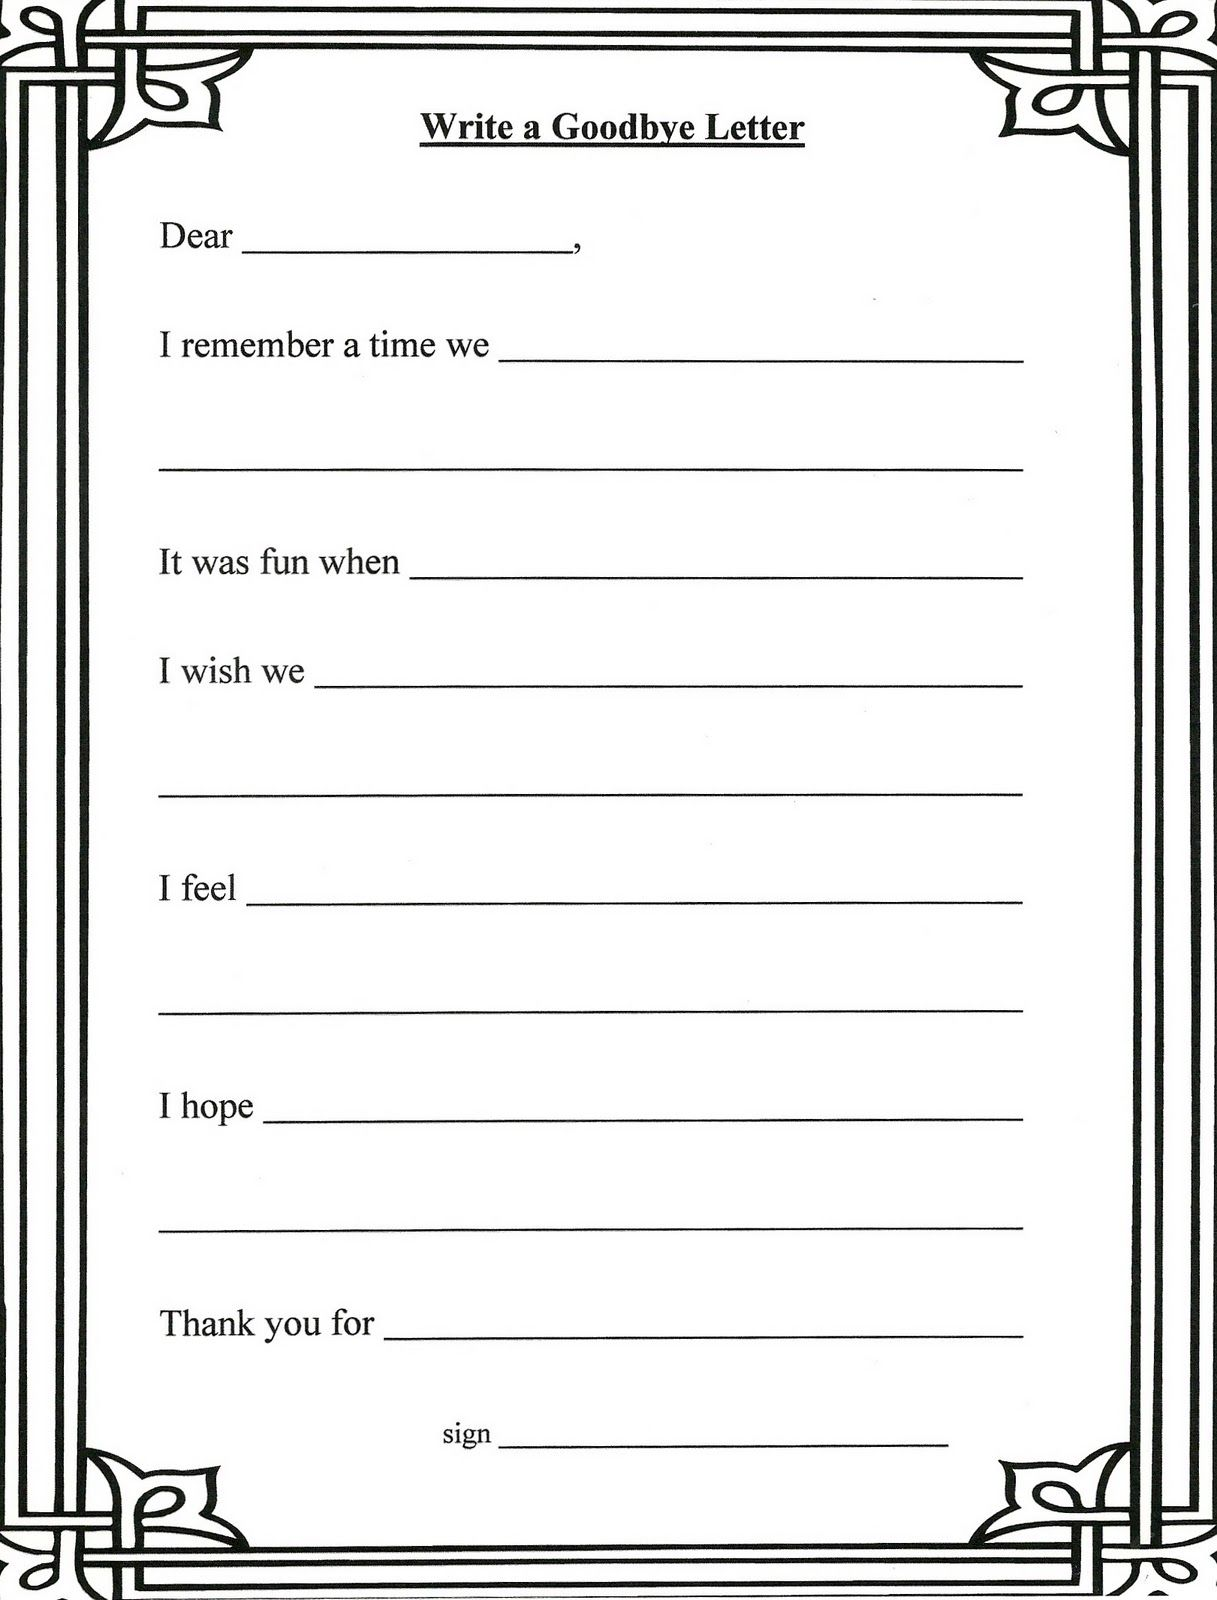 How To Organize An Appreciation Letter